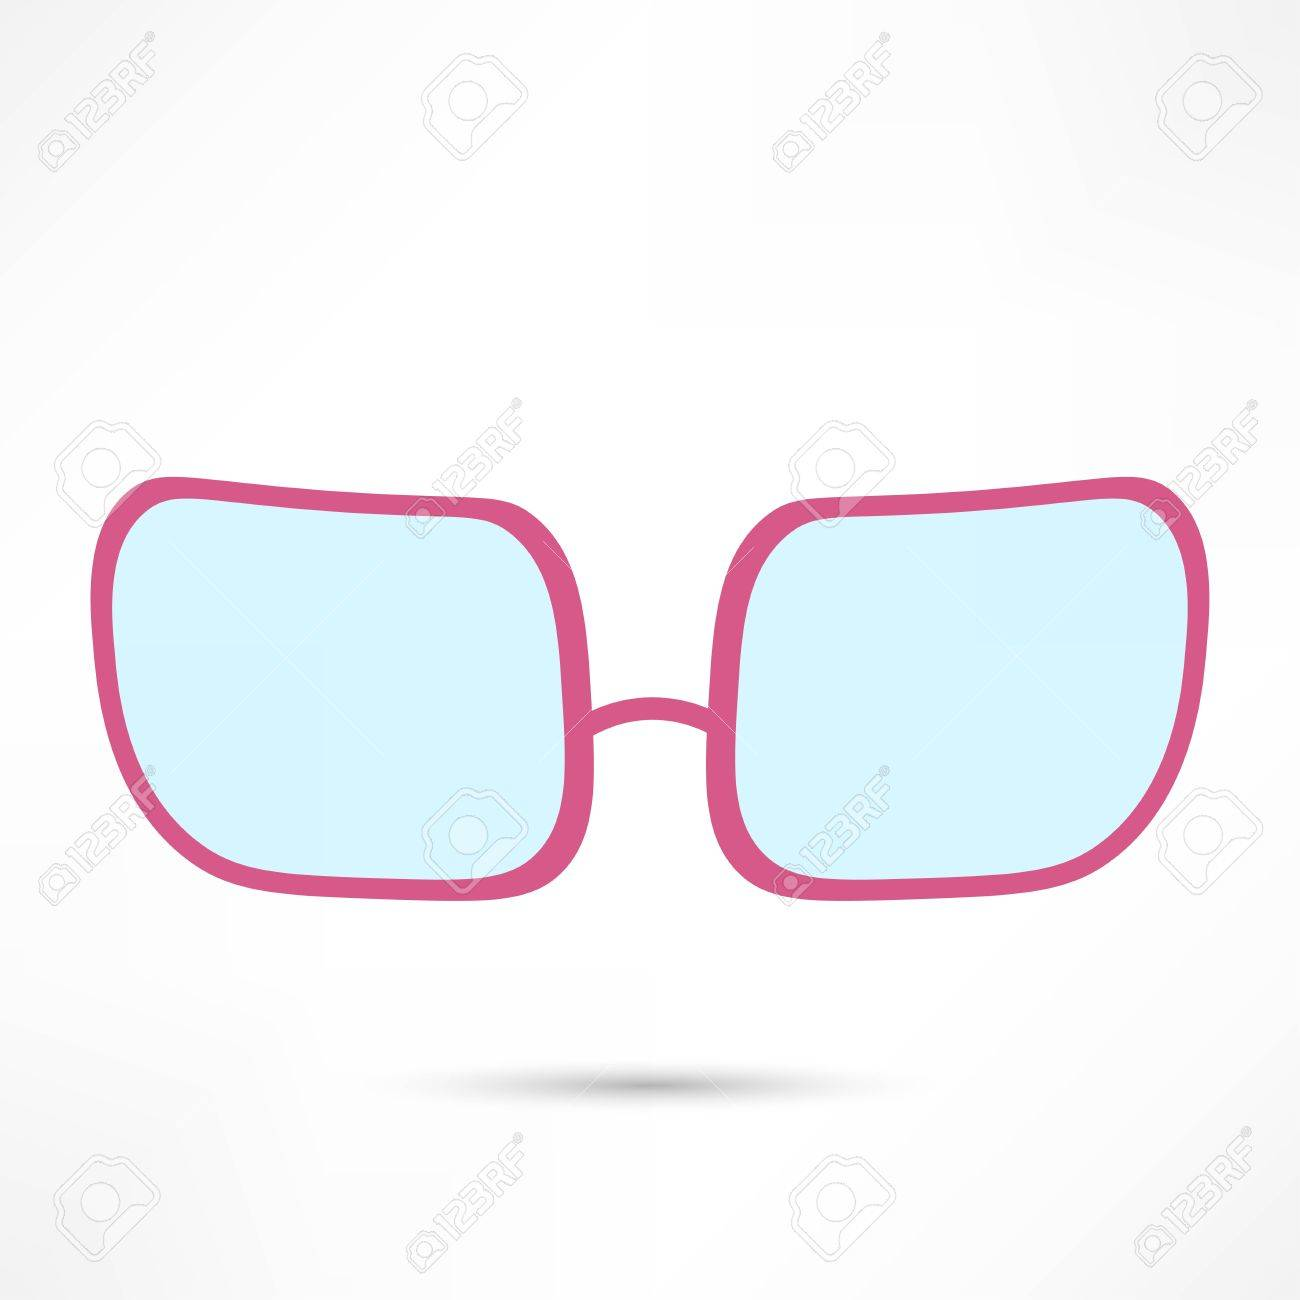 Rose Colored Glasses Clipart.